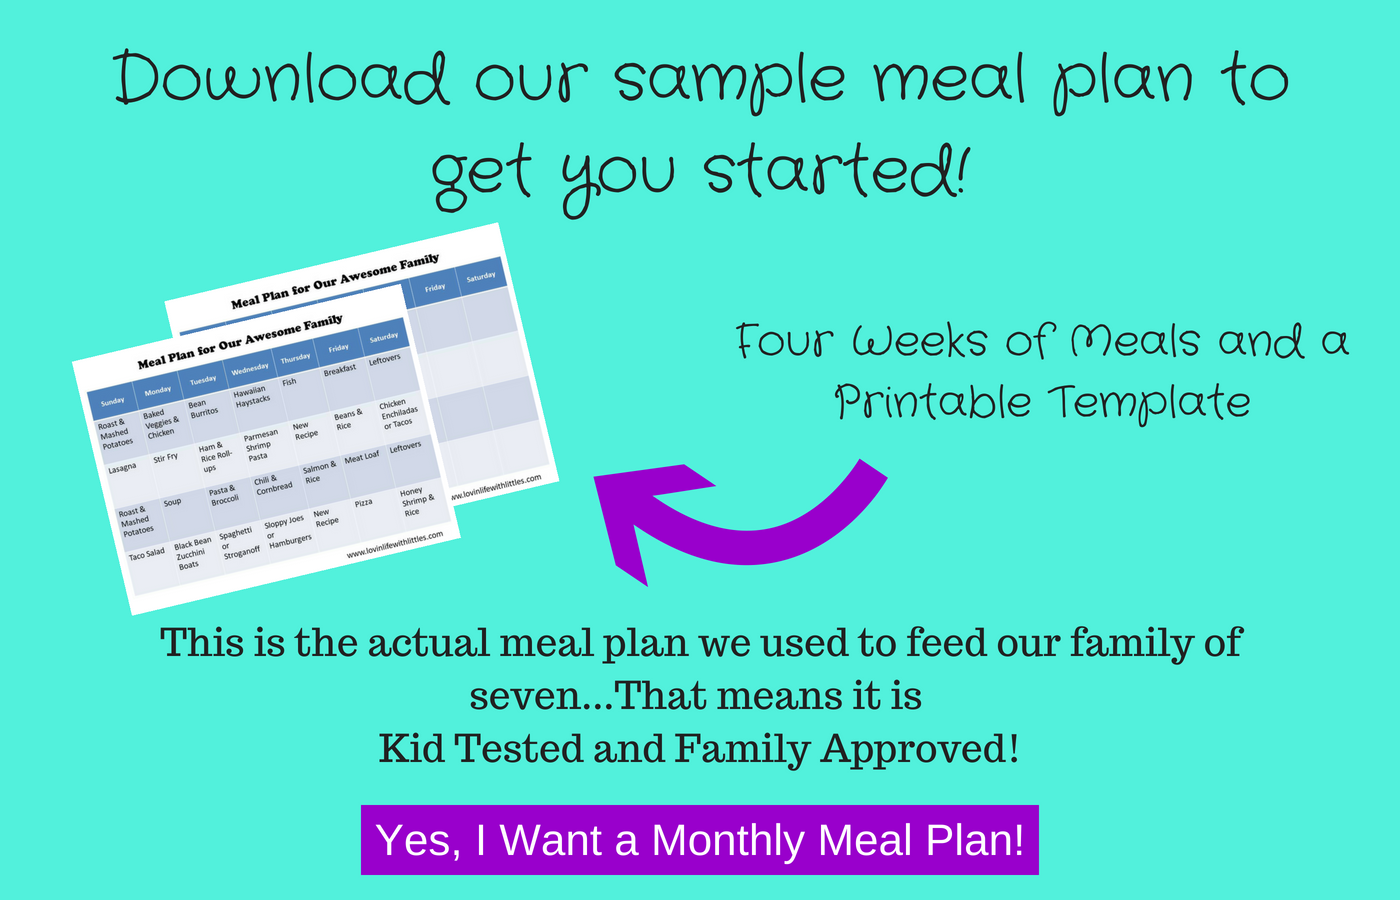 Sample Monthly Meal Plan From Lovinlifewithlittles This Contains Kid Tested